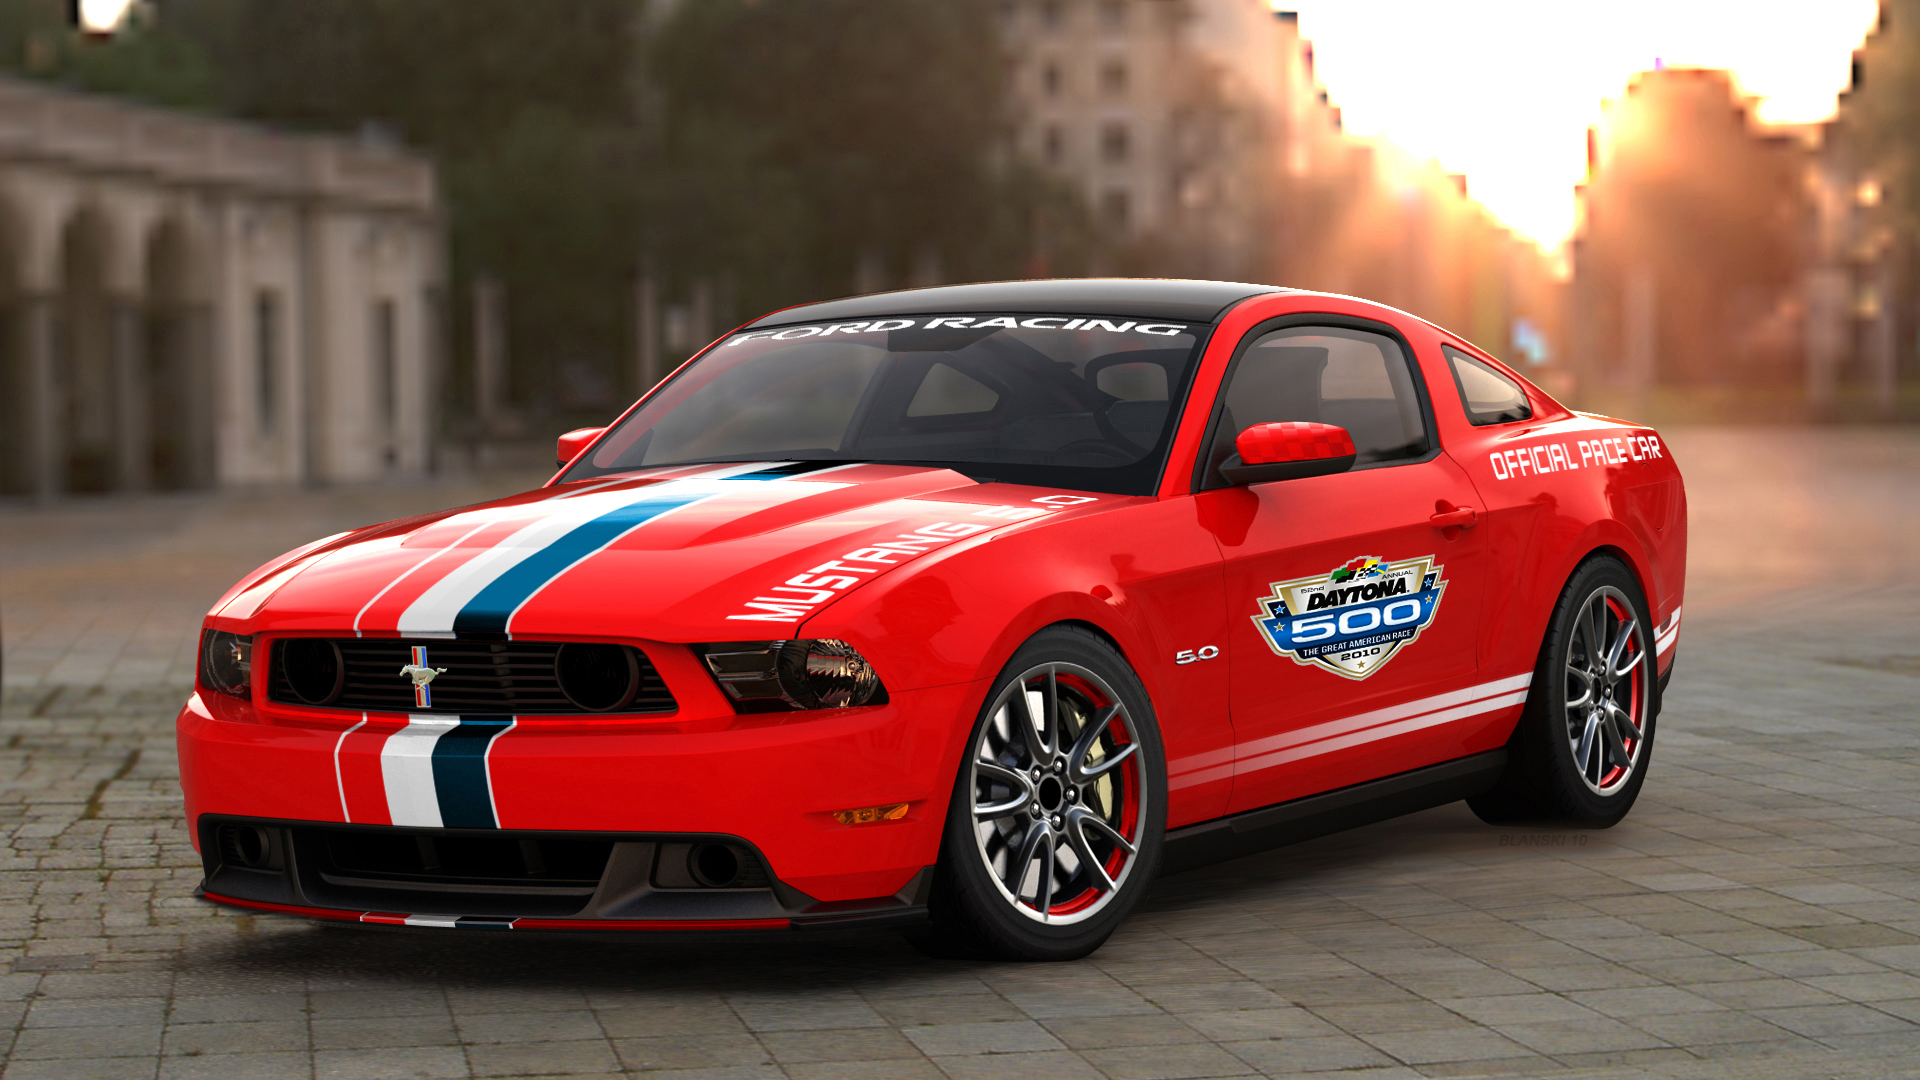 2011 ford mustang gt named daytona 500 pace car motor city muscle cars. Black Bedroom Furniture Sets. Home Design Ideas